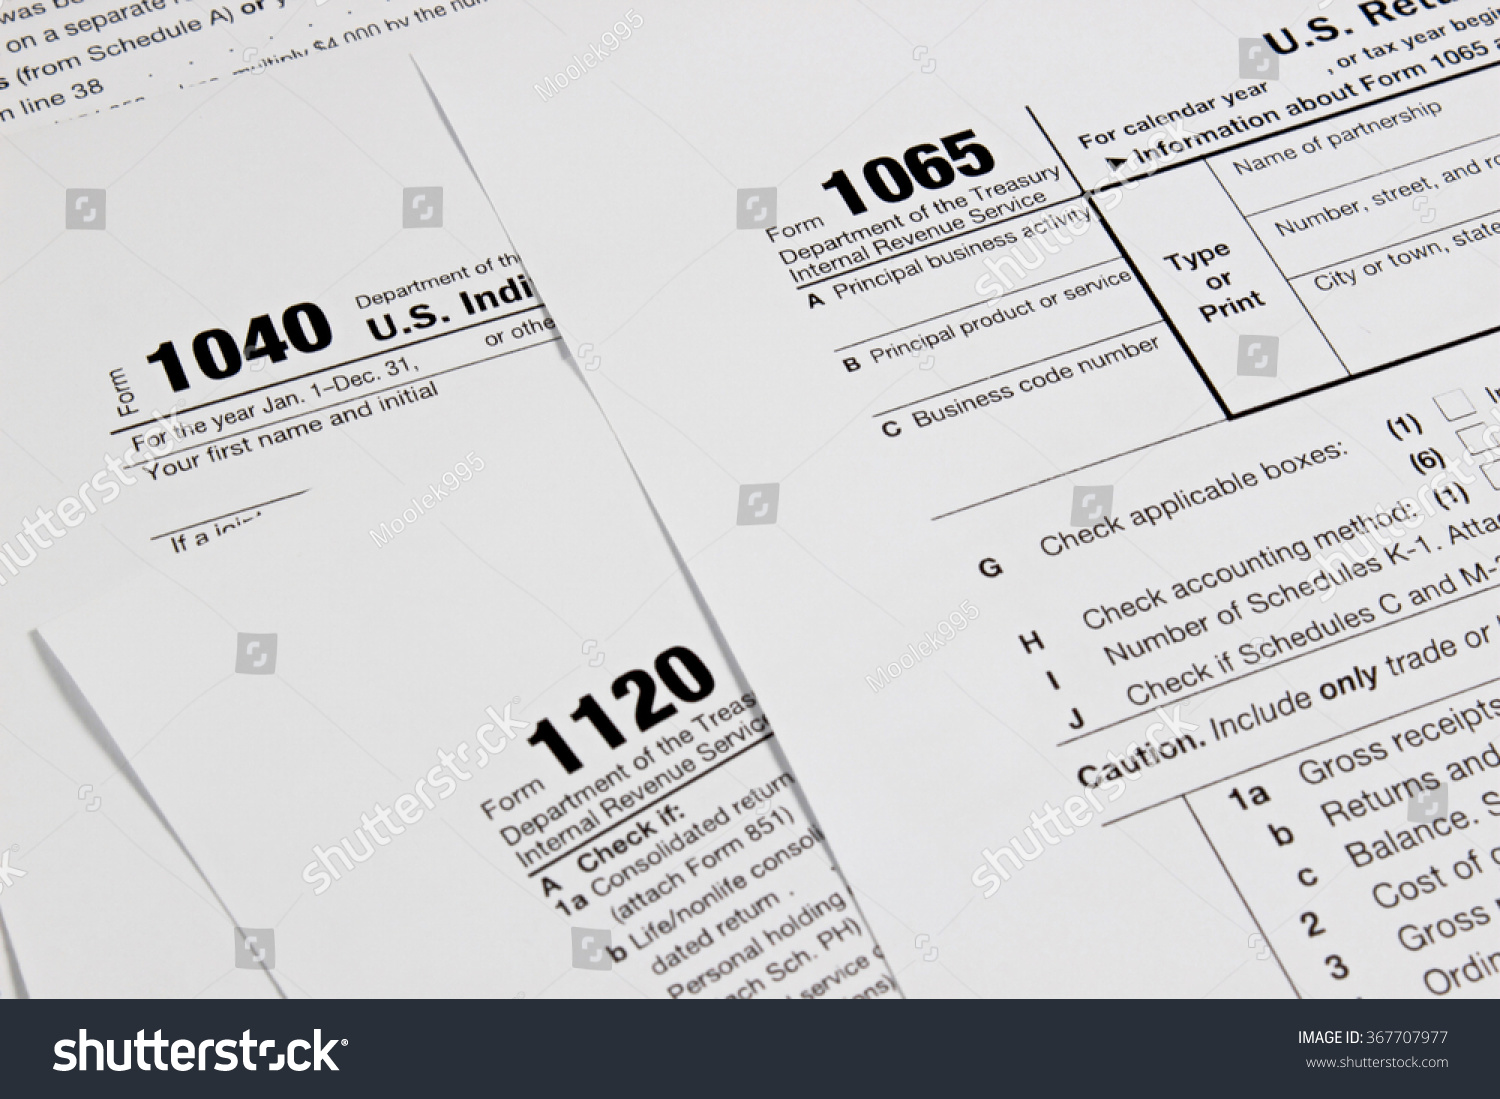 Us Tax Form Taxation Concept Stock Photo 367707977 - Shutterstock